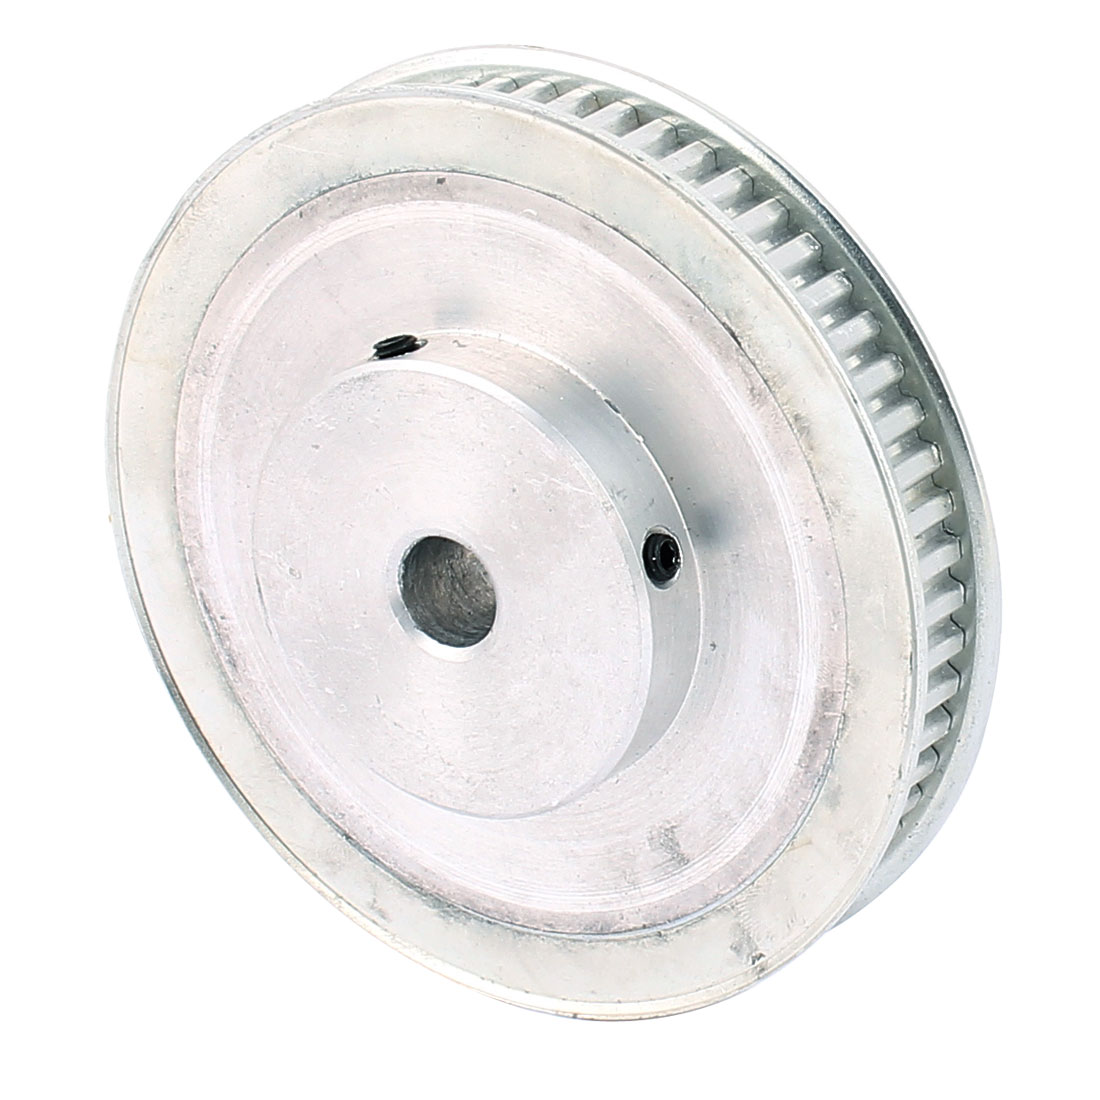 XL60 60 Teeth 12mm Bore Dia 10mm Width Belt Motor Drive Timing Pulley Silver Tone